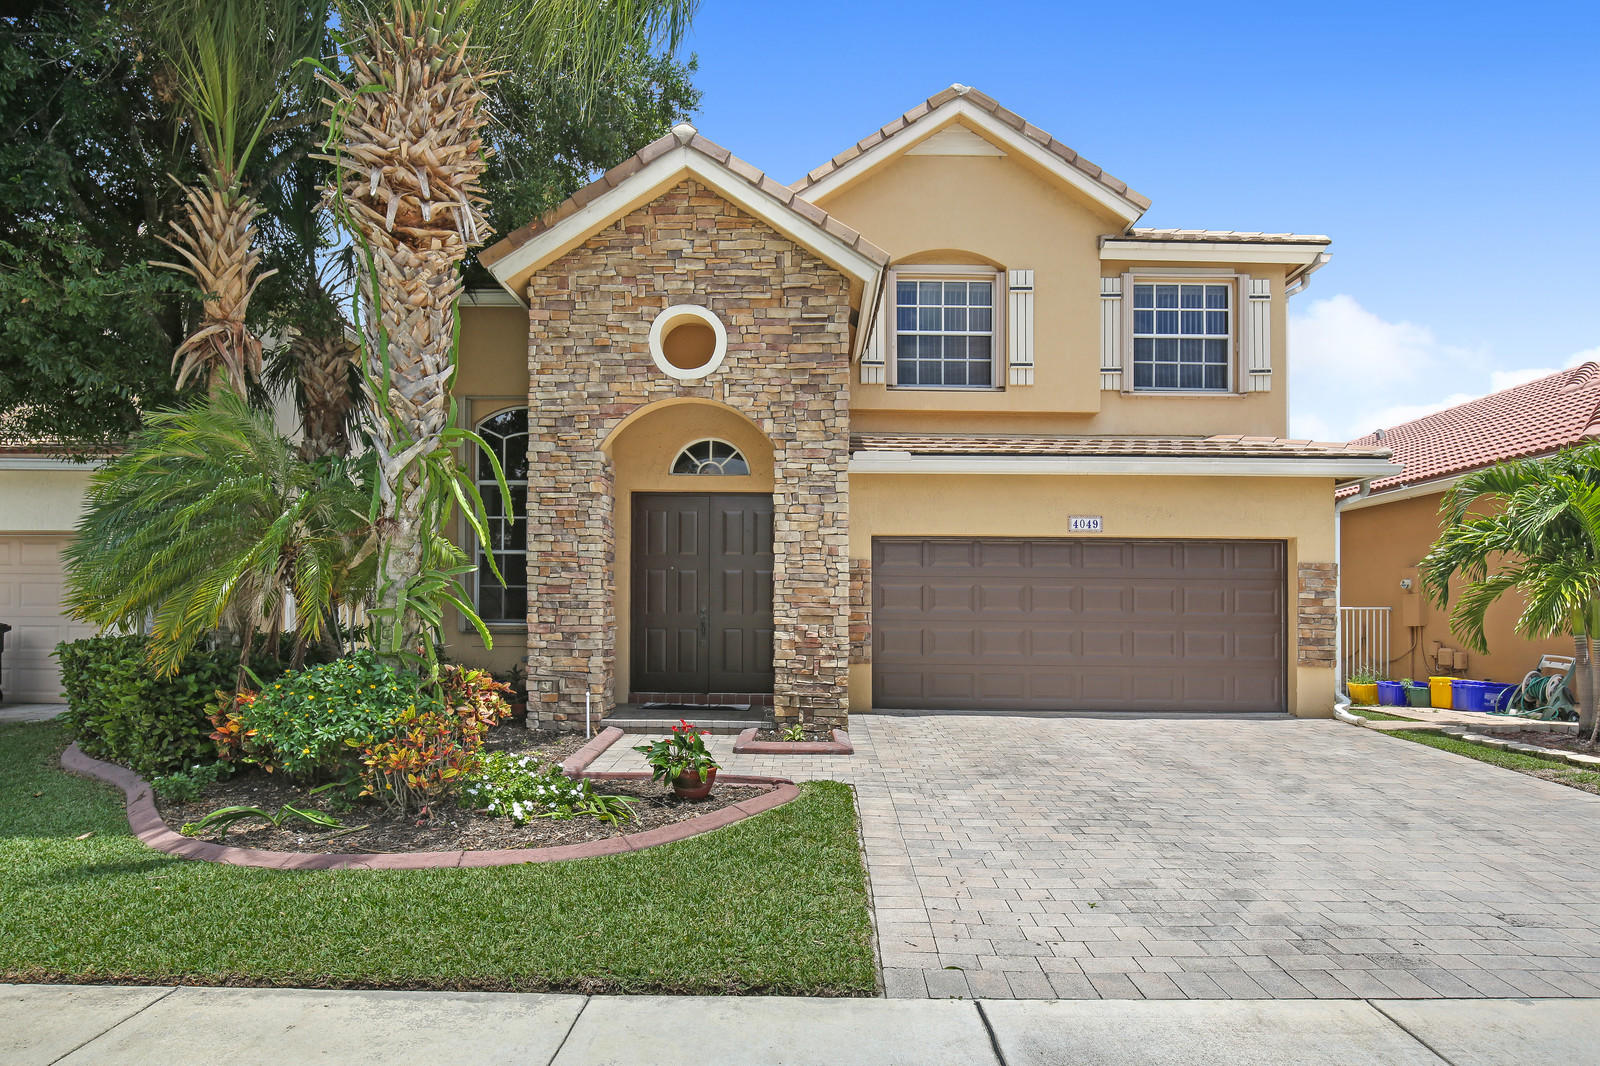 Home for sale in The Vineyards Lake Worth Florida